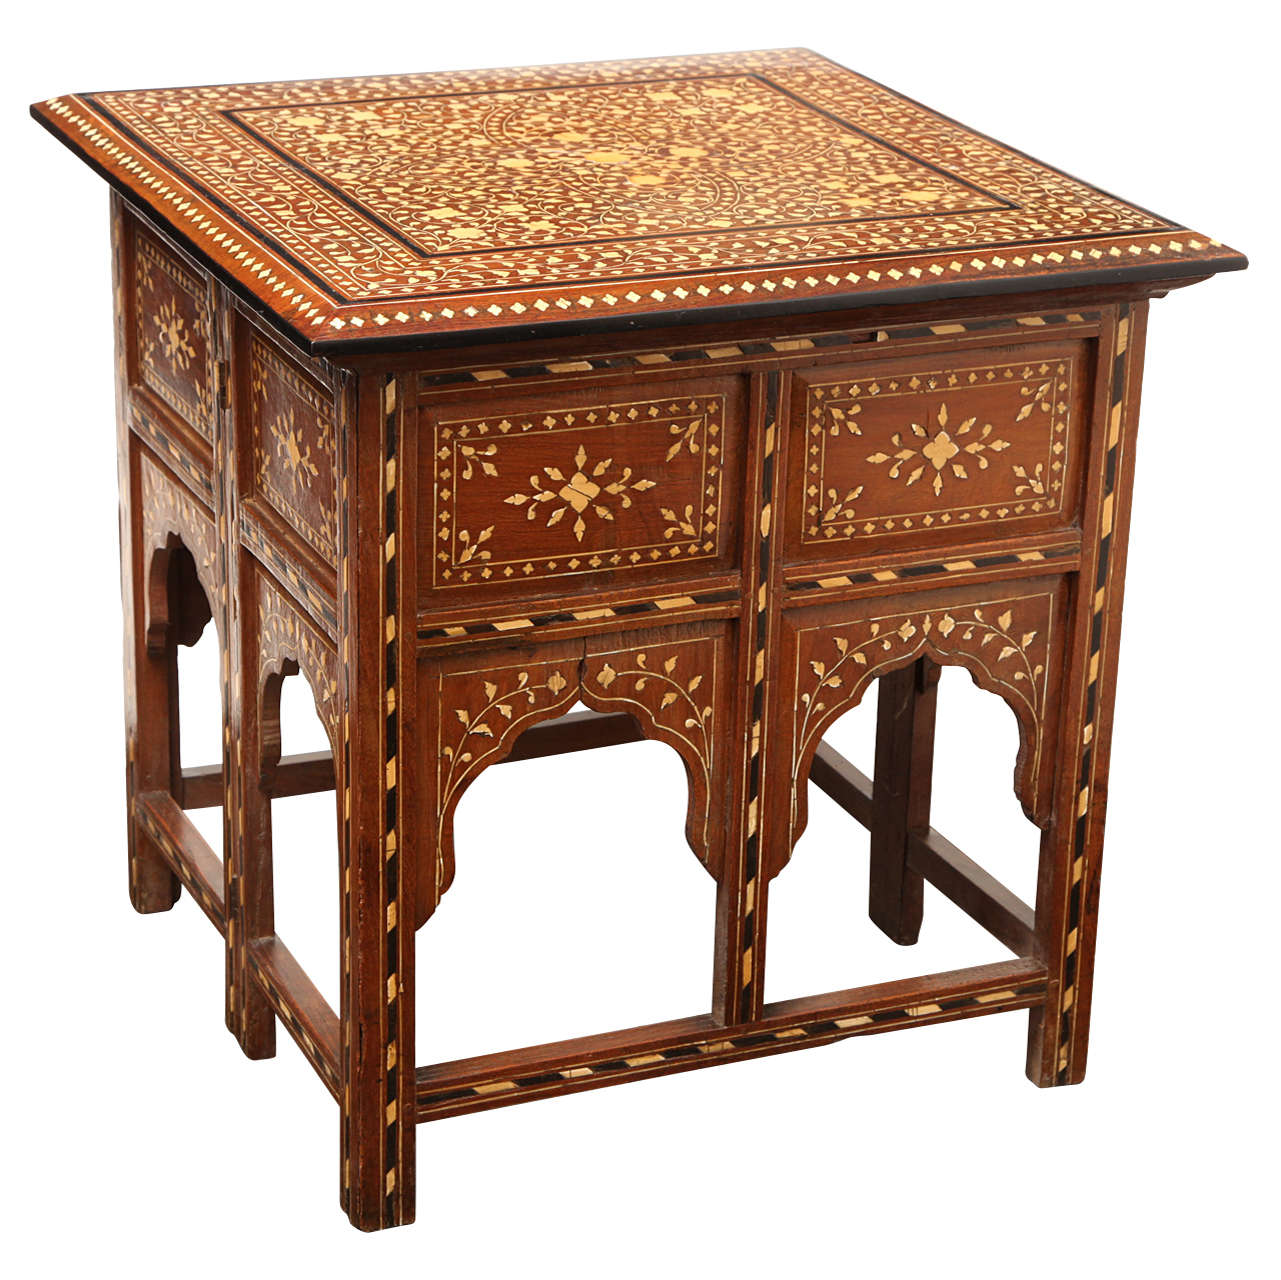 19th Century, Bone Inlaid Table